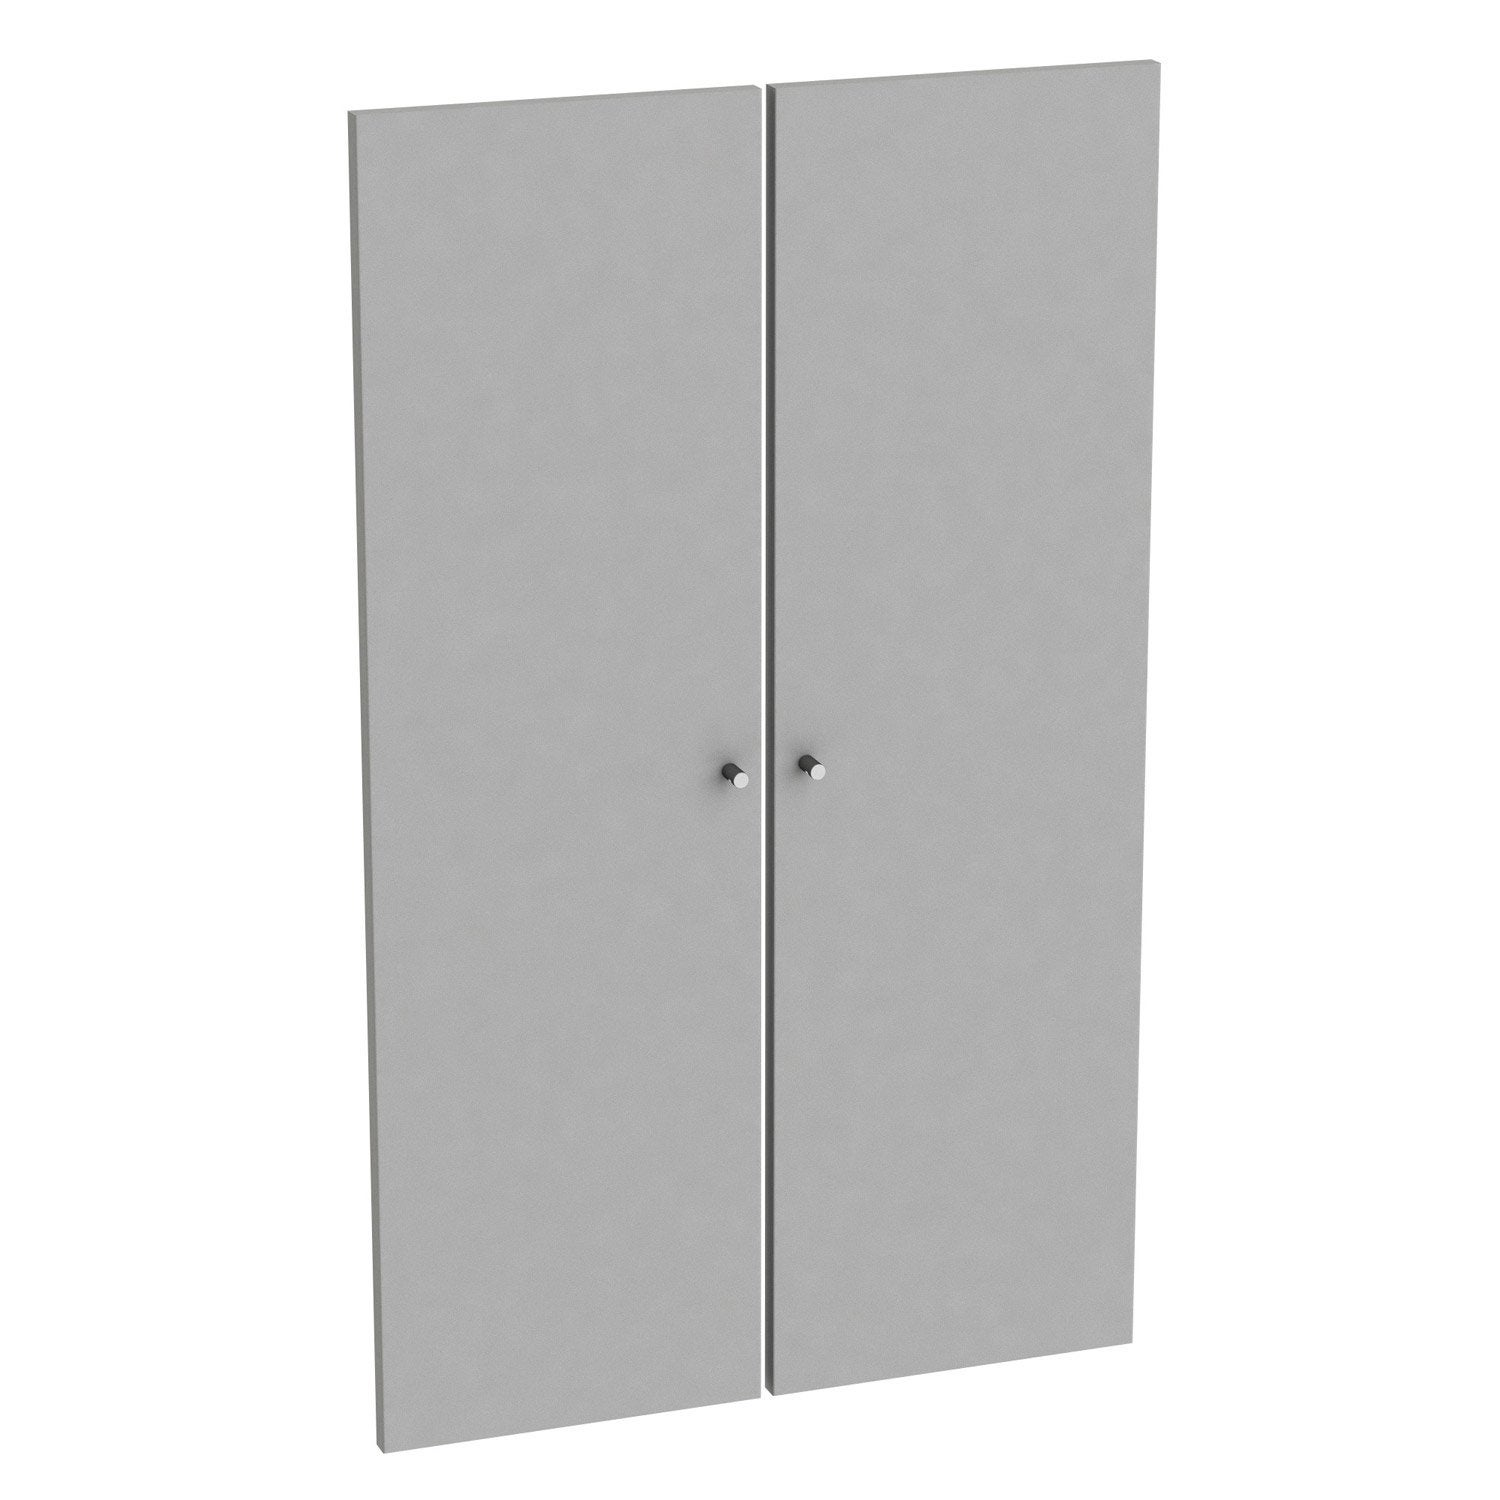 Lot de 2 portes battantes spaceo home 100 x 30 x 1 6 cm for Porte 60 x 30